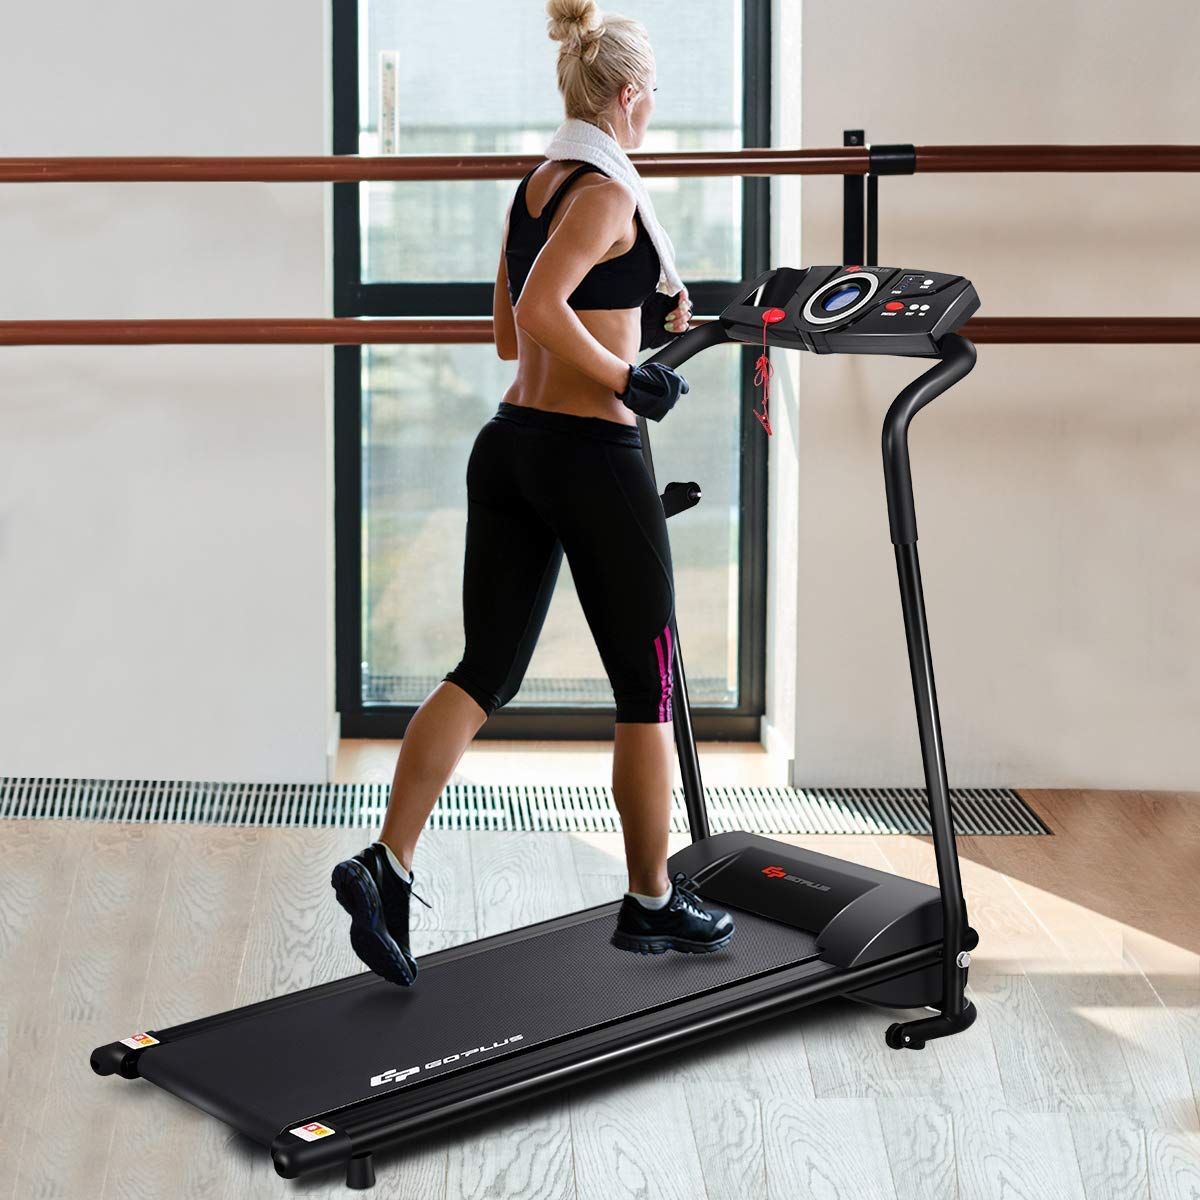 Goplus Compact Treadmill Walking Running Machine Low Noise, Built-in 2 Workout Modes and 12 Programs, with Display